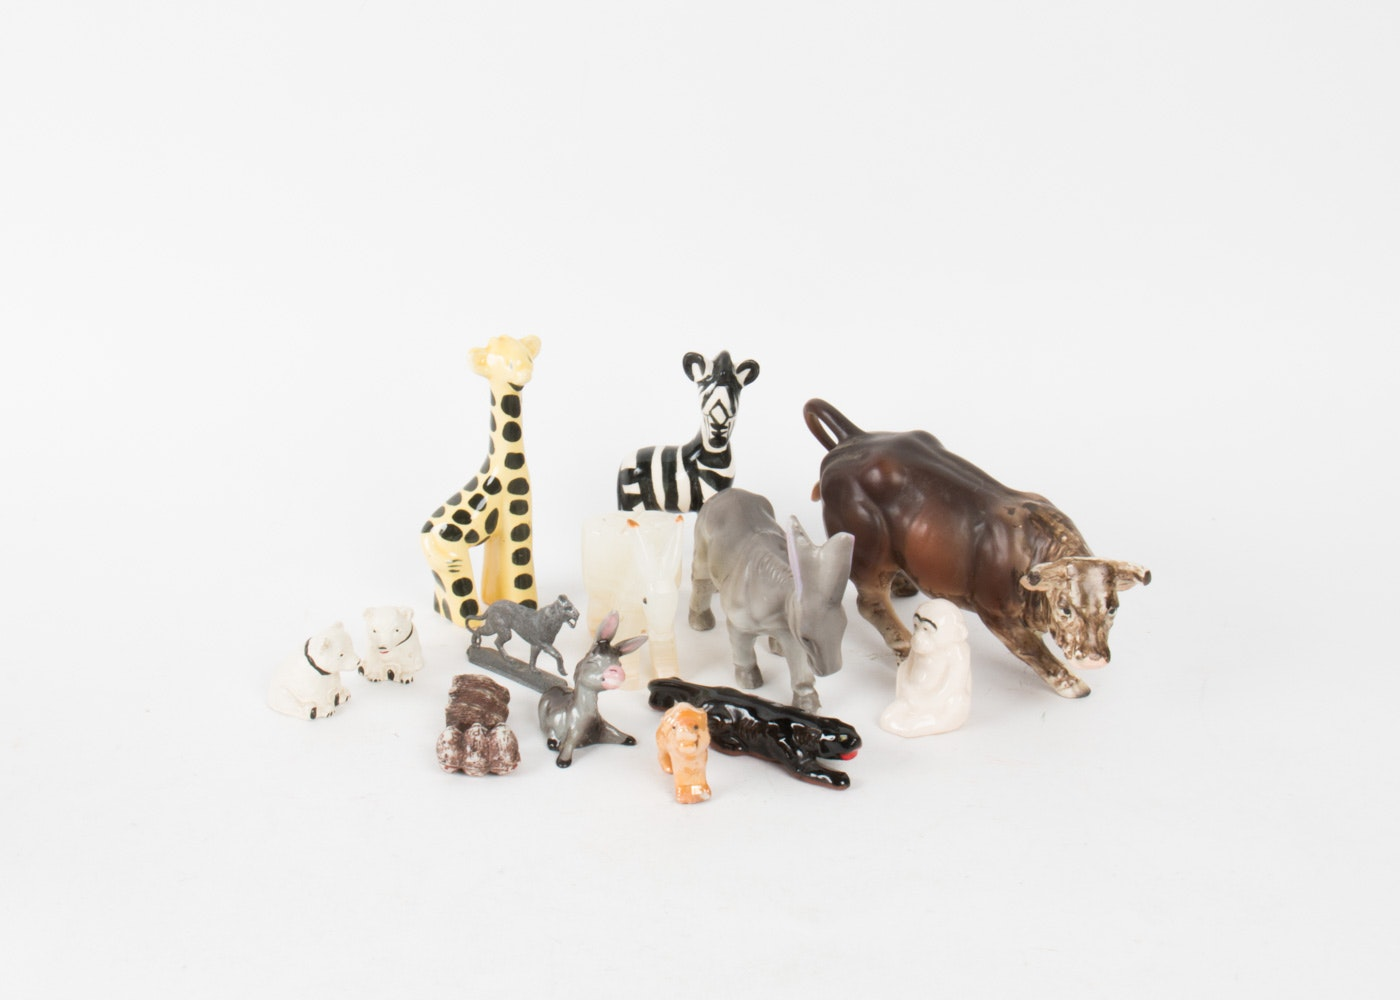 Assortment of Animal and Wildlife Figurines